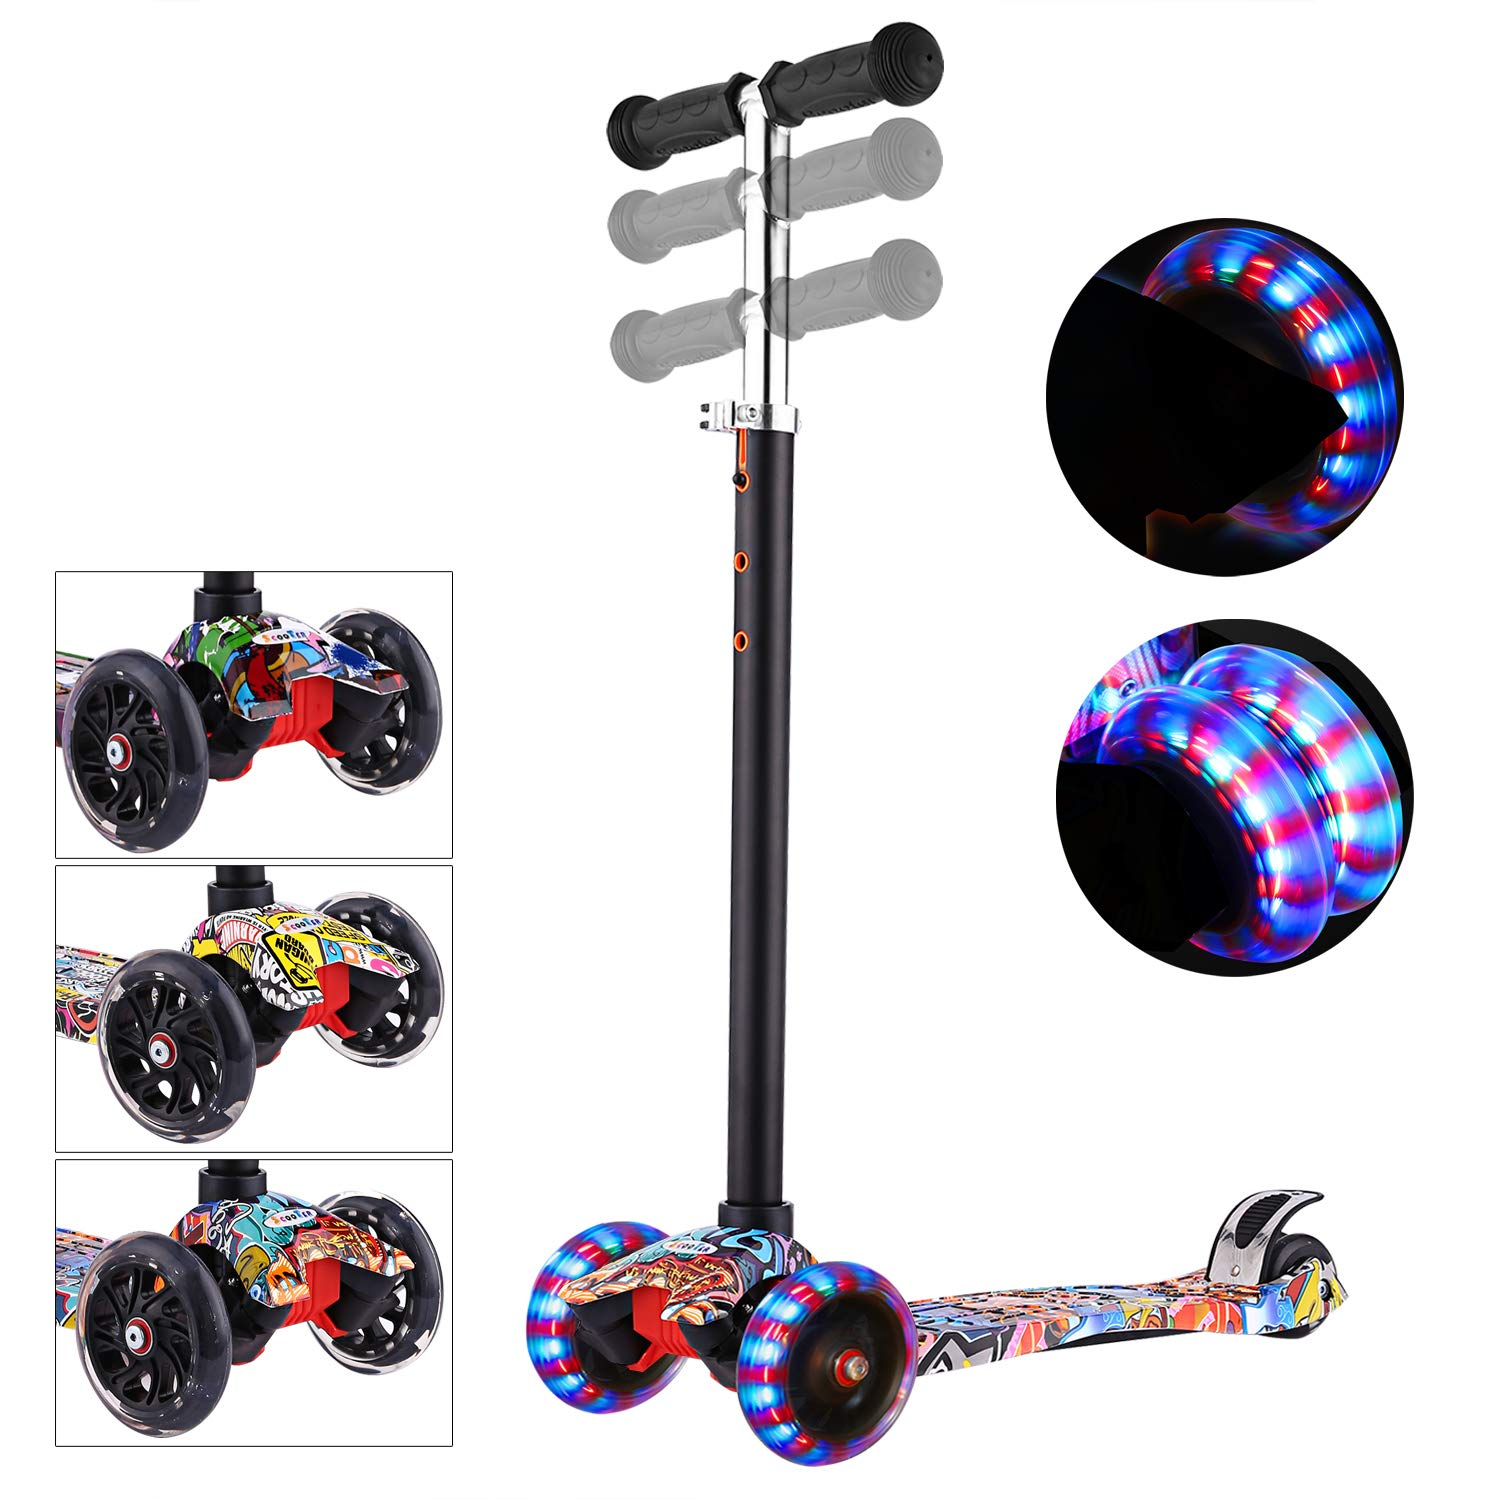 WeSkate Kids Scooter Adjustable Height Mini Children Kick Scooter with 3 Light Up Flashing Wheel for Boys Girls,Quick Disassembly with One Button,Support 110LBS (Red Hip-hop Graffiti) by WeSkate